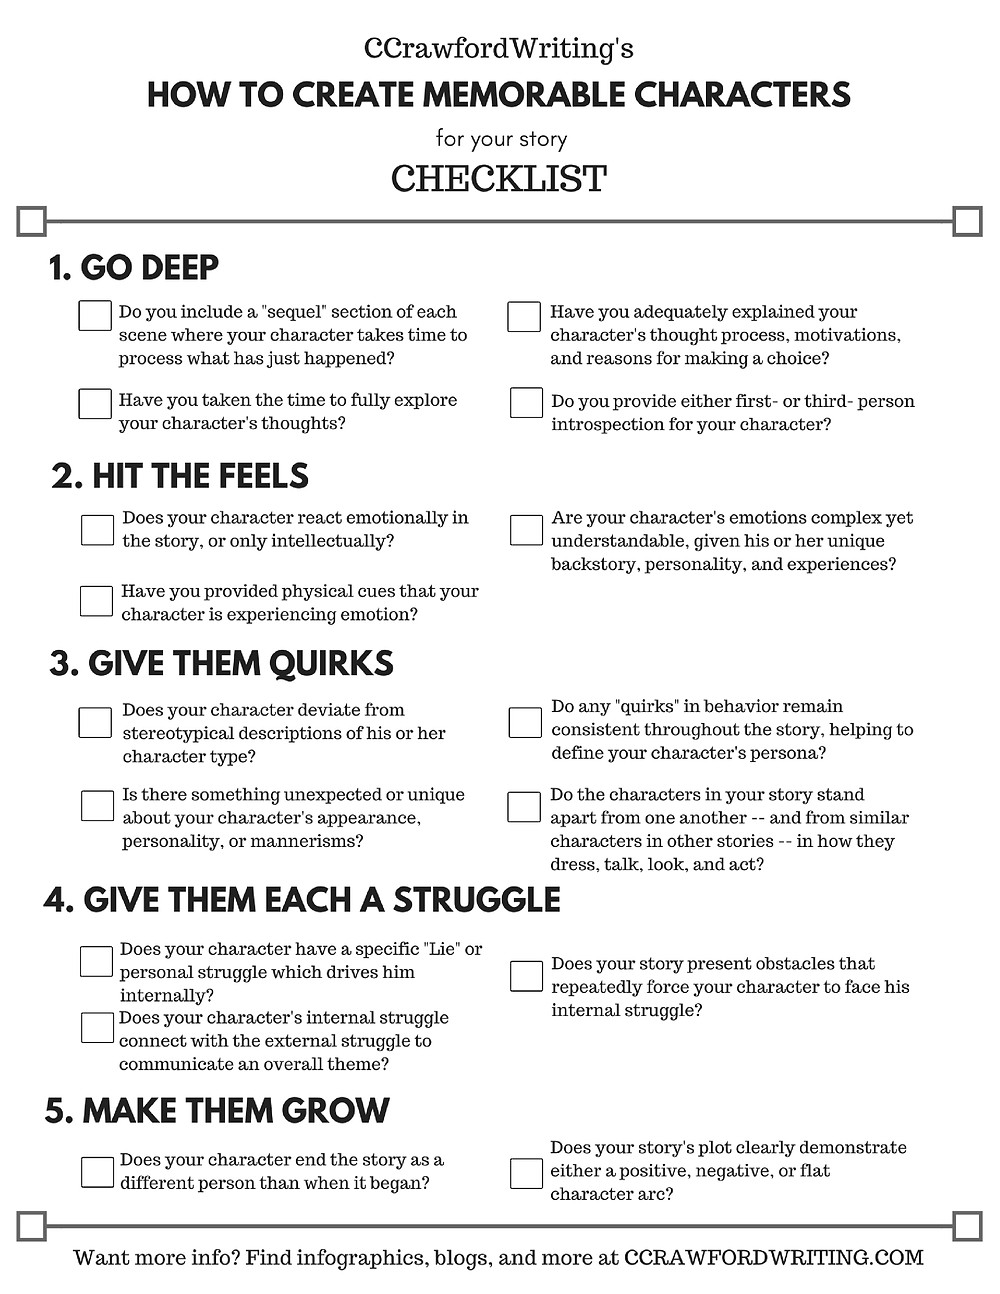 Copy of How to Create a Memorable Characters CHECKLIST